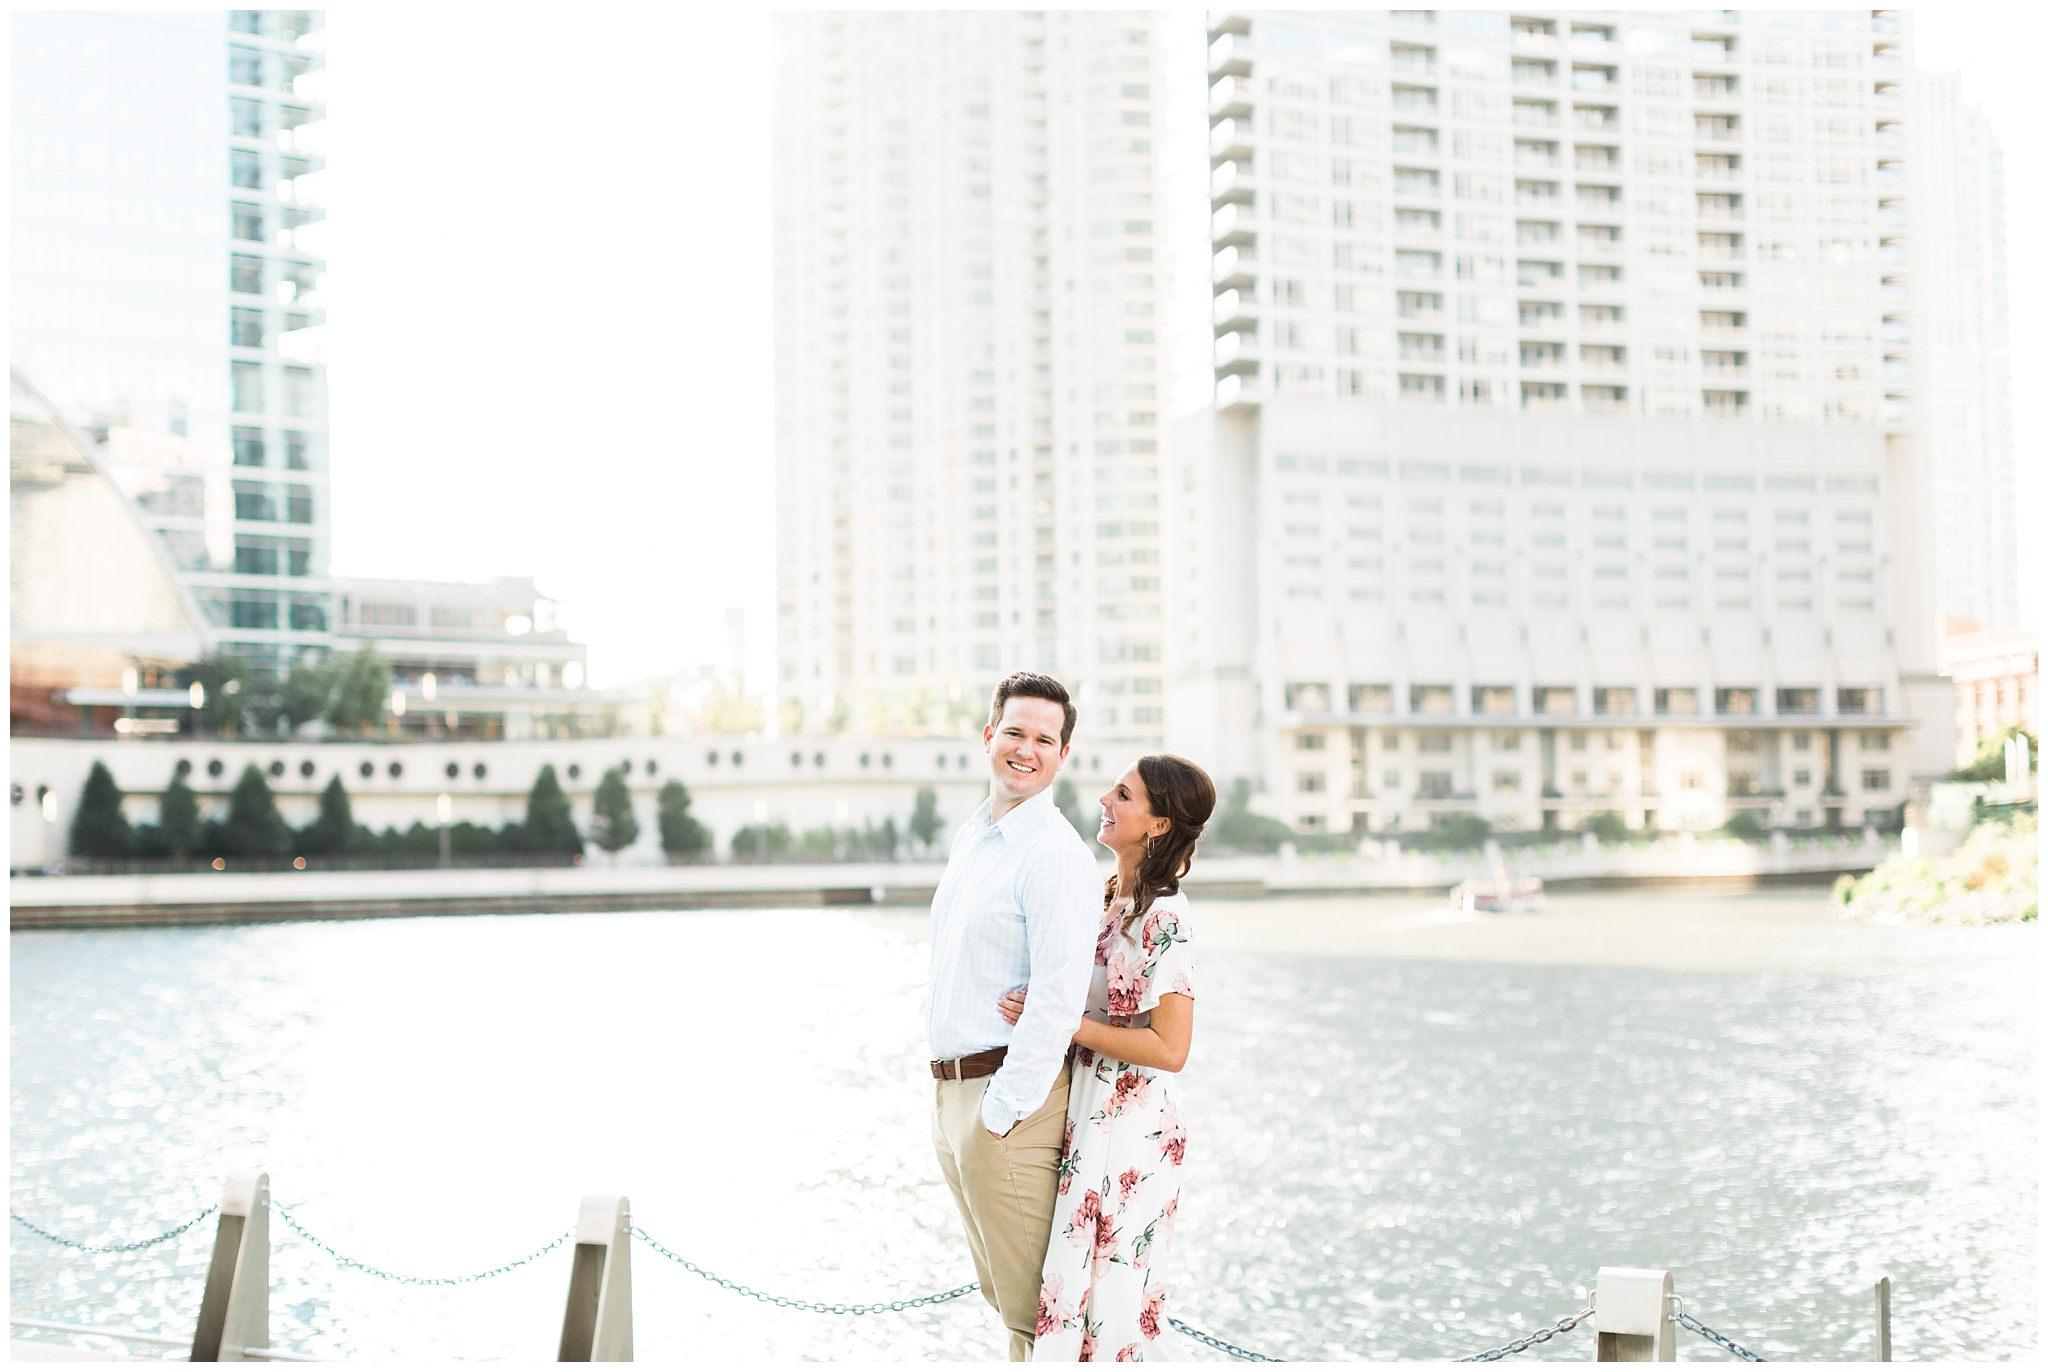 chicagoengagementsession_northavebeachengagementsession_northavebeach_northavenuebeach_northavenuebeachengagementsession_chicagoriverwalk_chicagoriverwalkengagementsession_0006.jpg